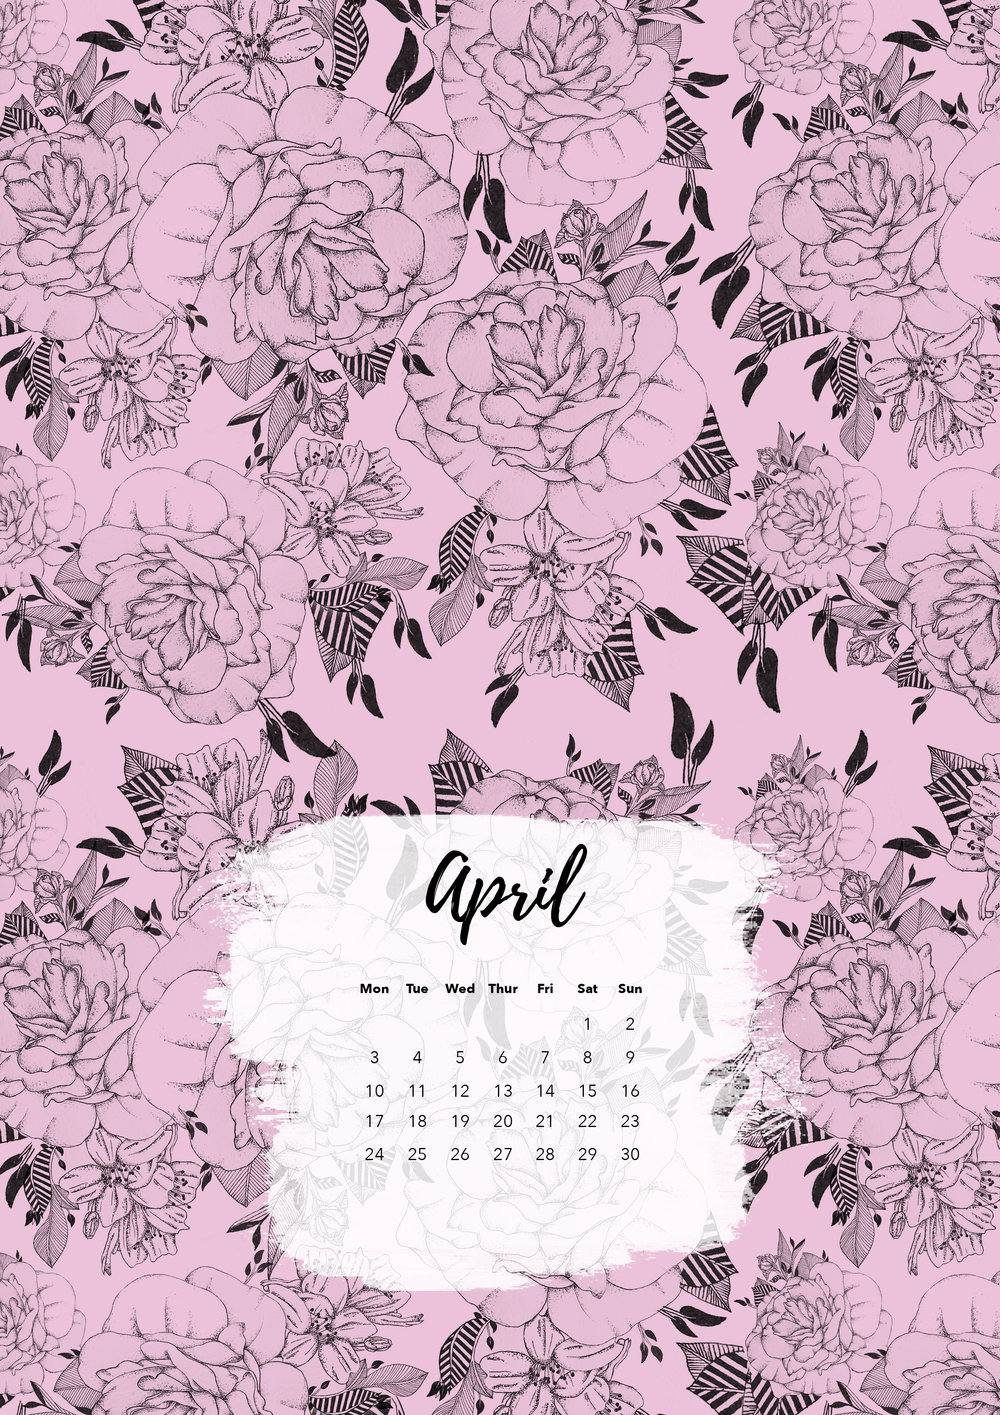 Felicity & Ink - Free Printable Calendar - April 2017.jpg